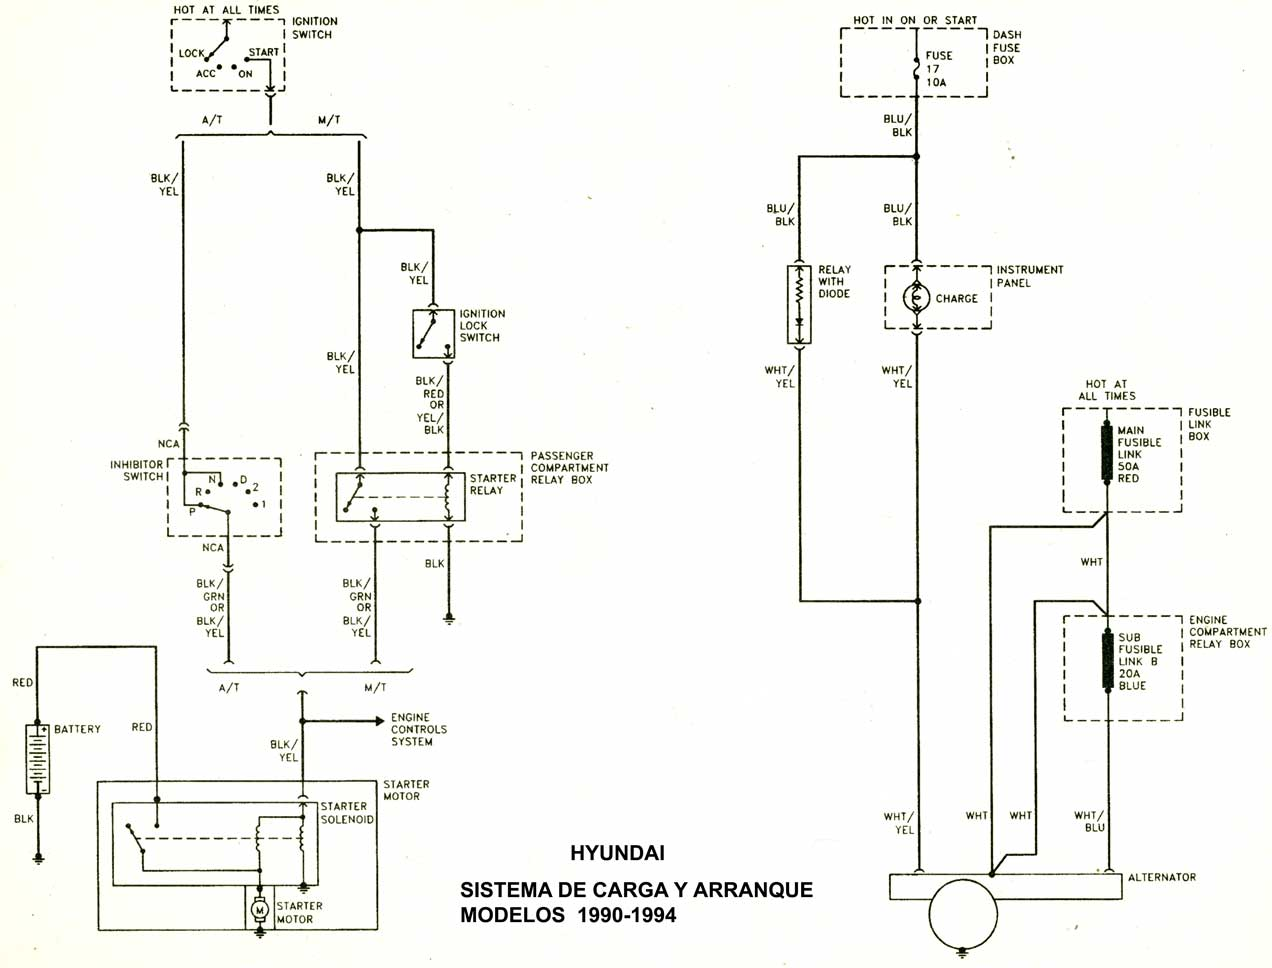 Hyundai Scoupe Wiring Diagram Will Be A Thing 2013 Sonata Speaker 1999 Excel Engine Free Image 2002